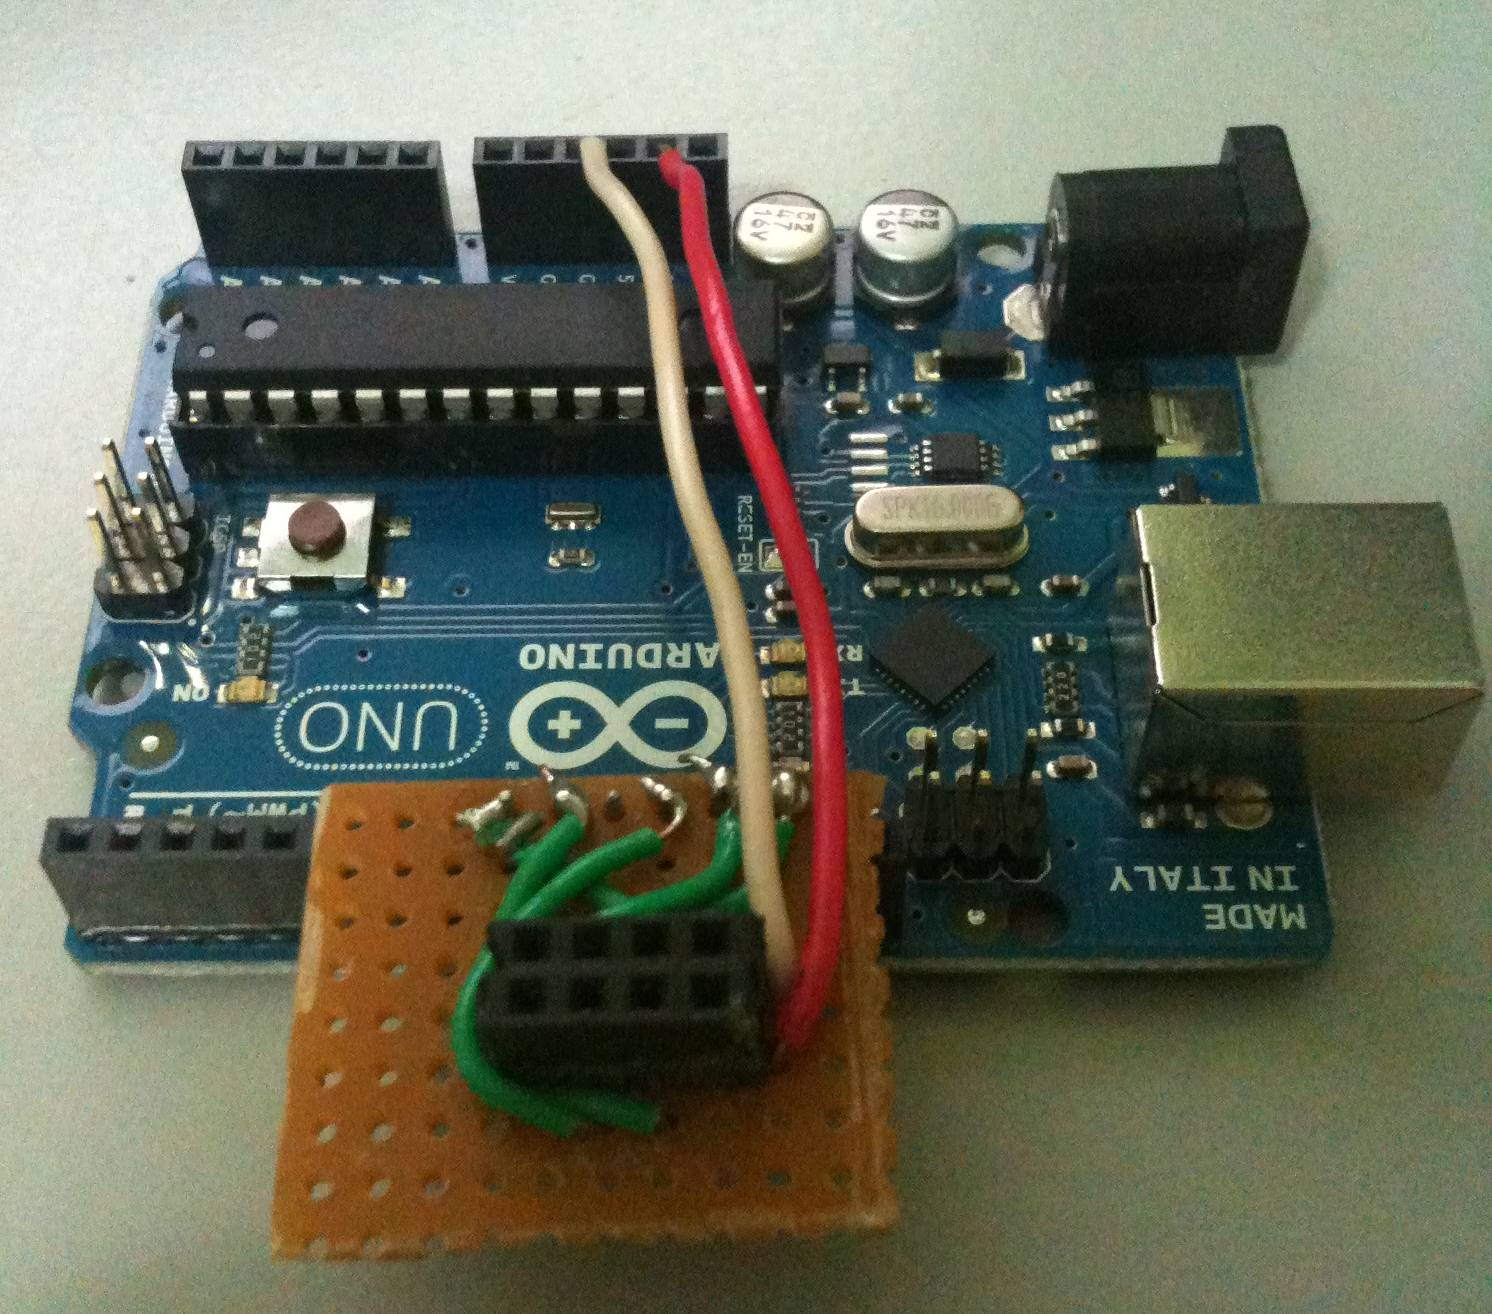 Pin 7 Arduino Frog Heart Ventral View Diagram For Beginners February 2013